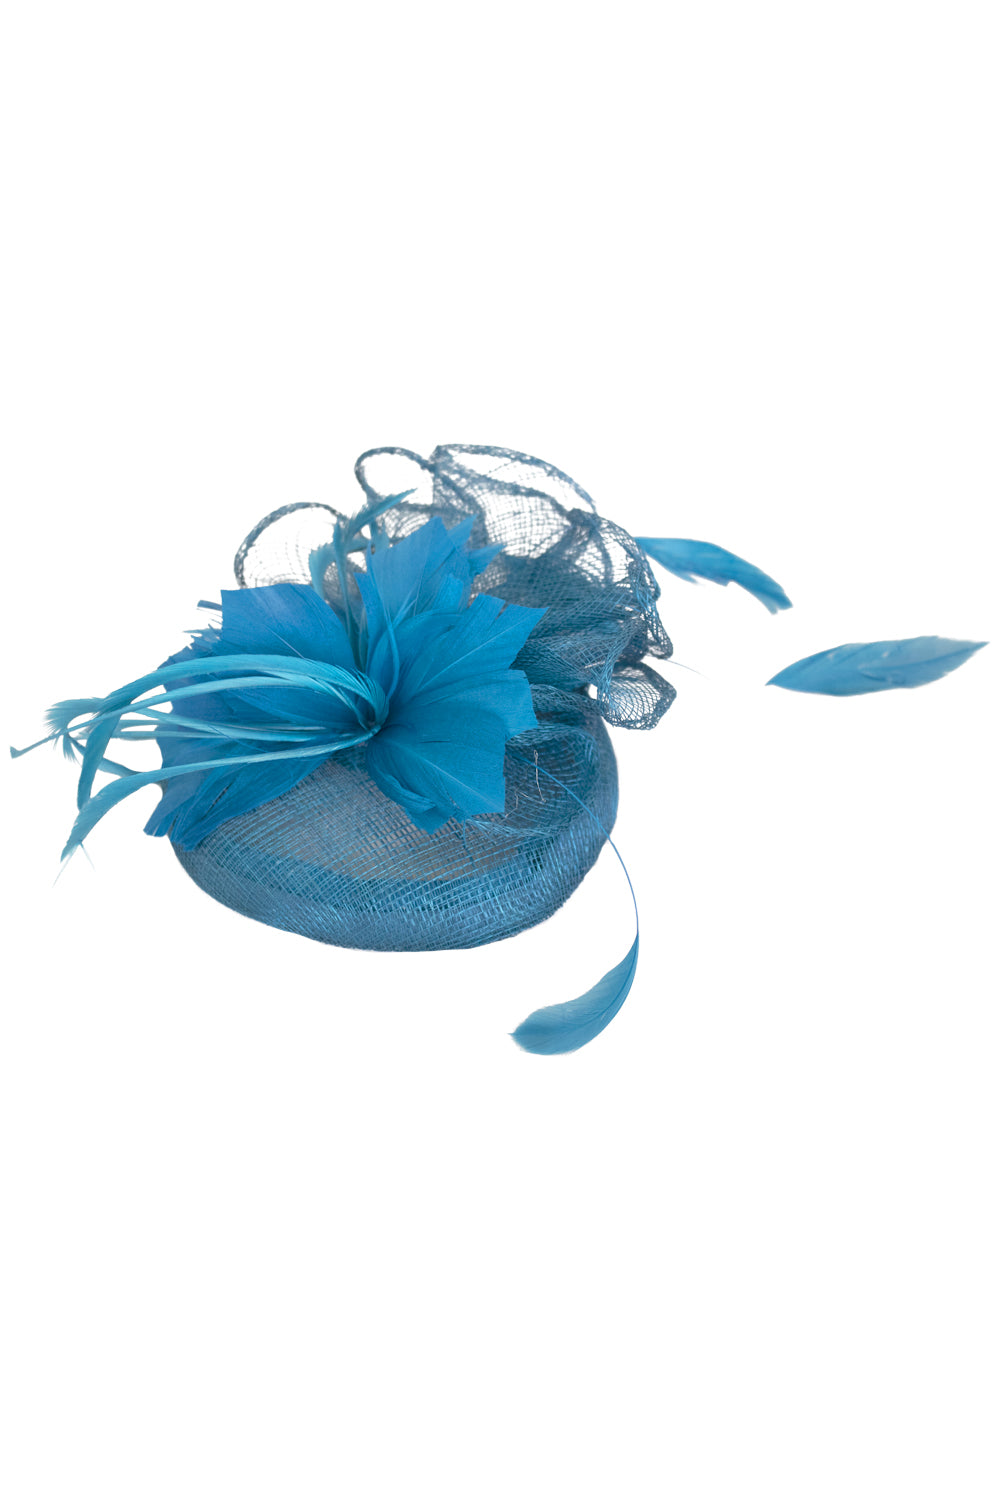 Ruffled Feathers Fascinator